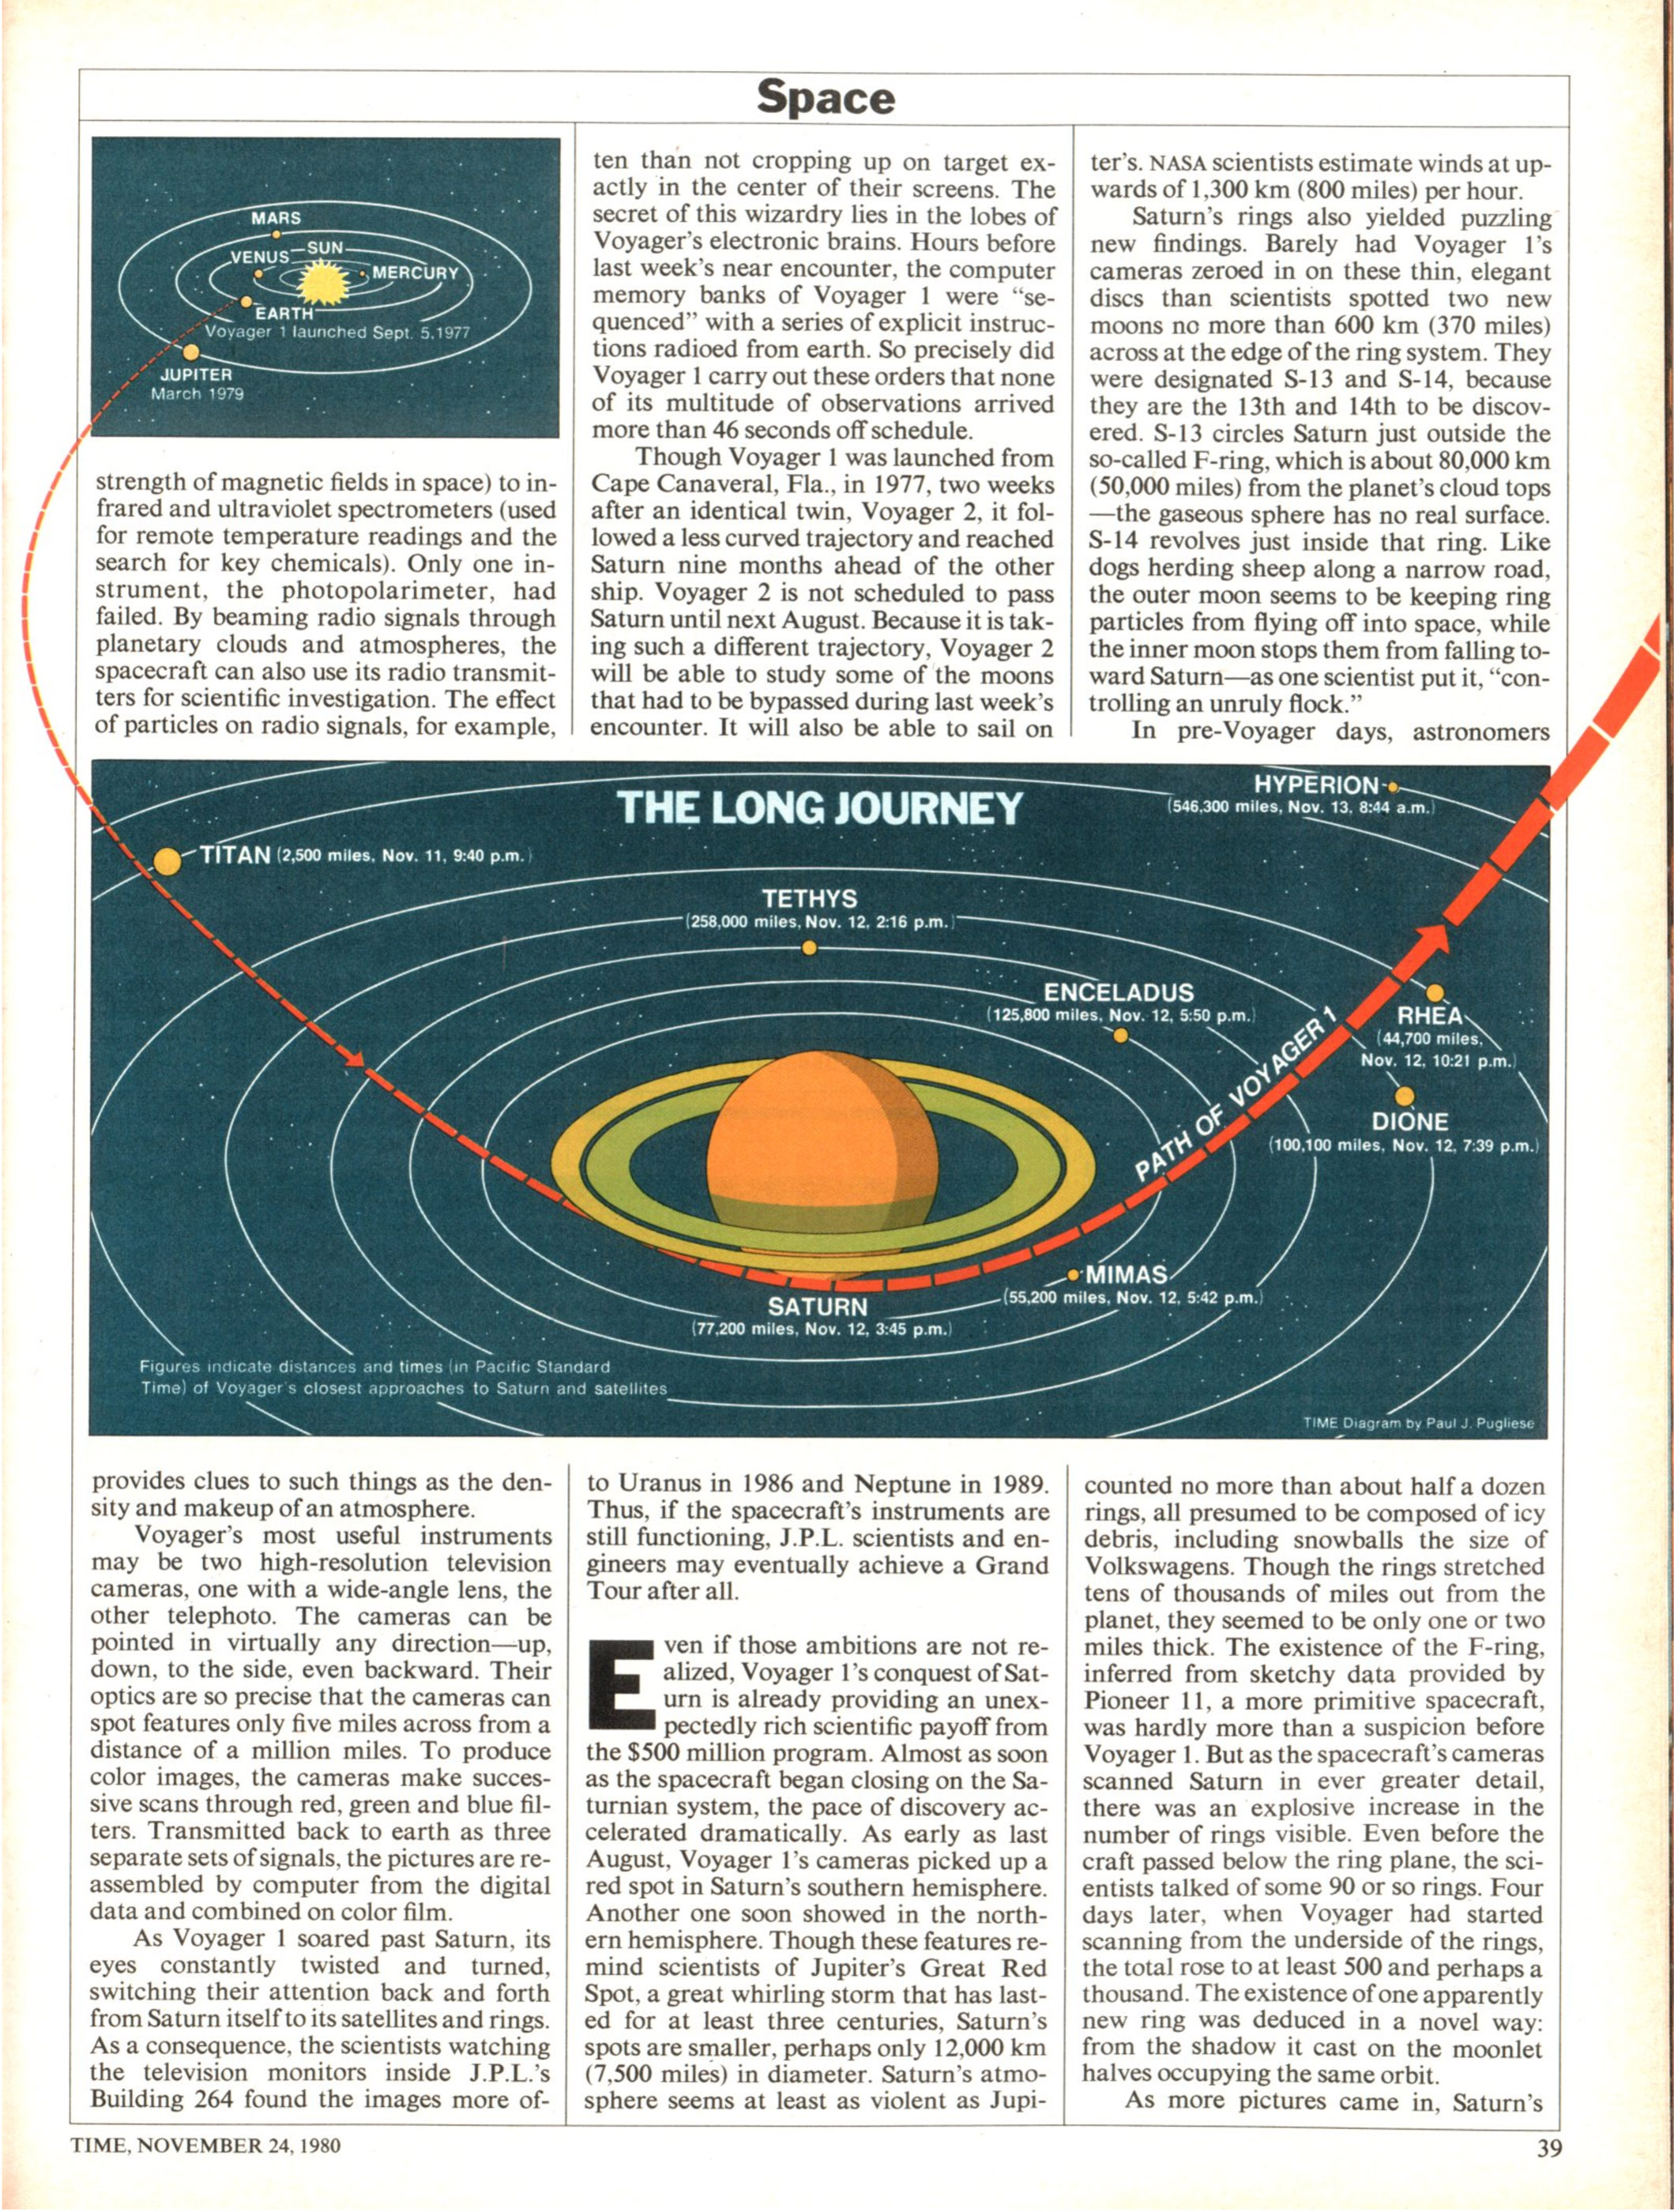 A page from the Nov. 24, 1980, issue of TIME